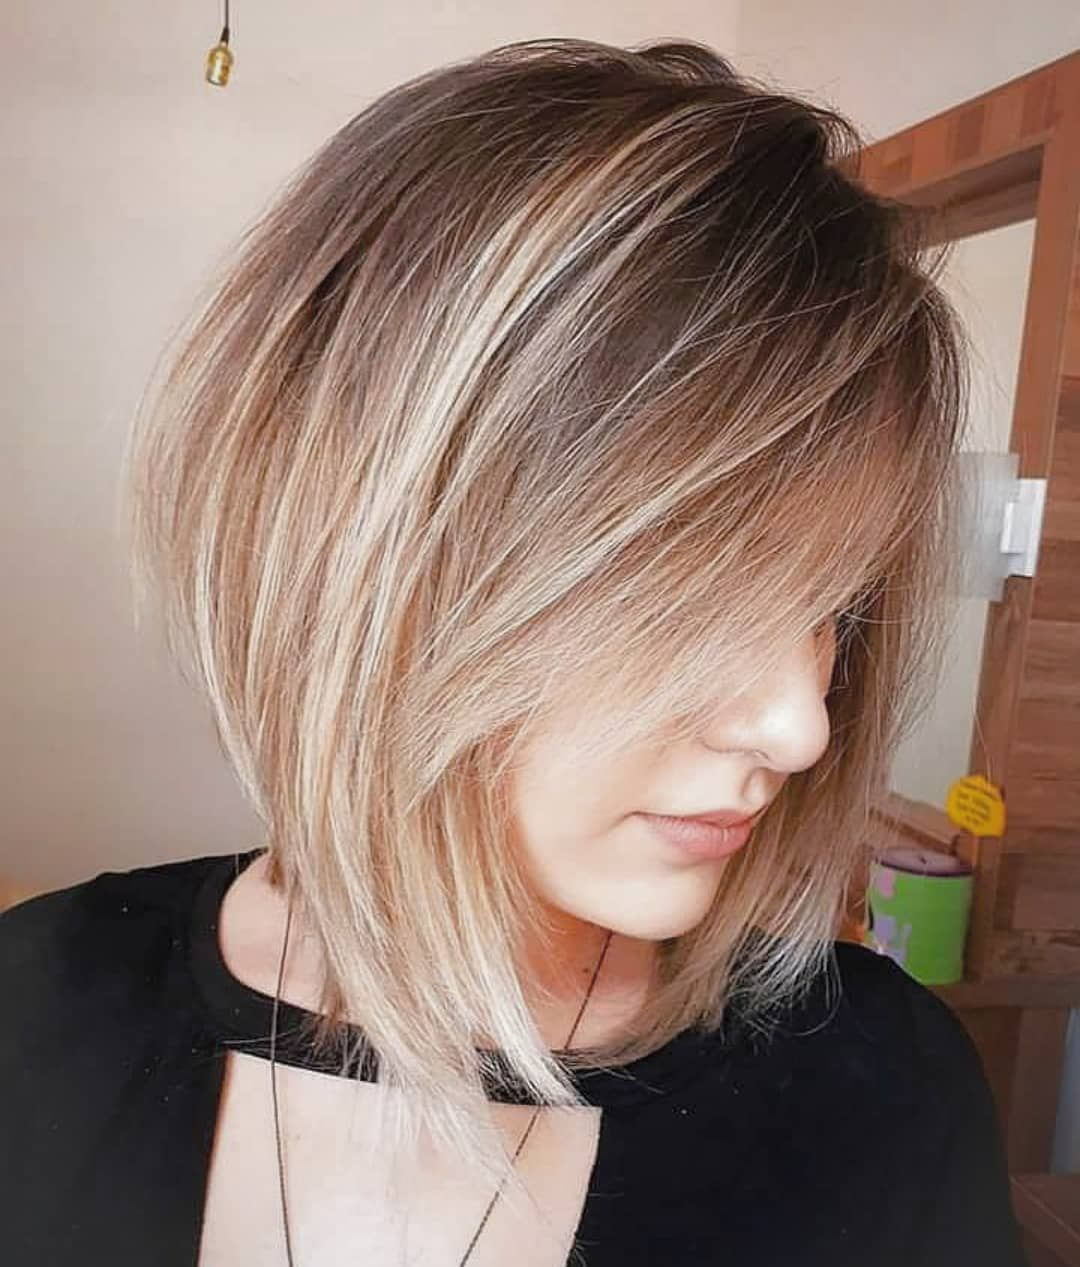 Stylish Choppy Lob Haircut For 2019 Women Shoulder Length Hairstyle Ideas Haircut For Thick Hair Lob Haircut Medium Length Hair Styles